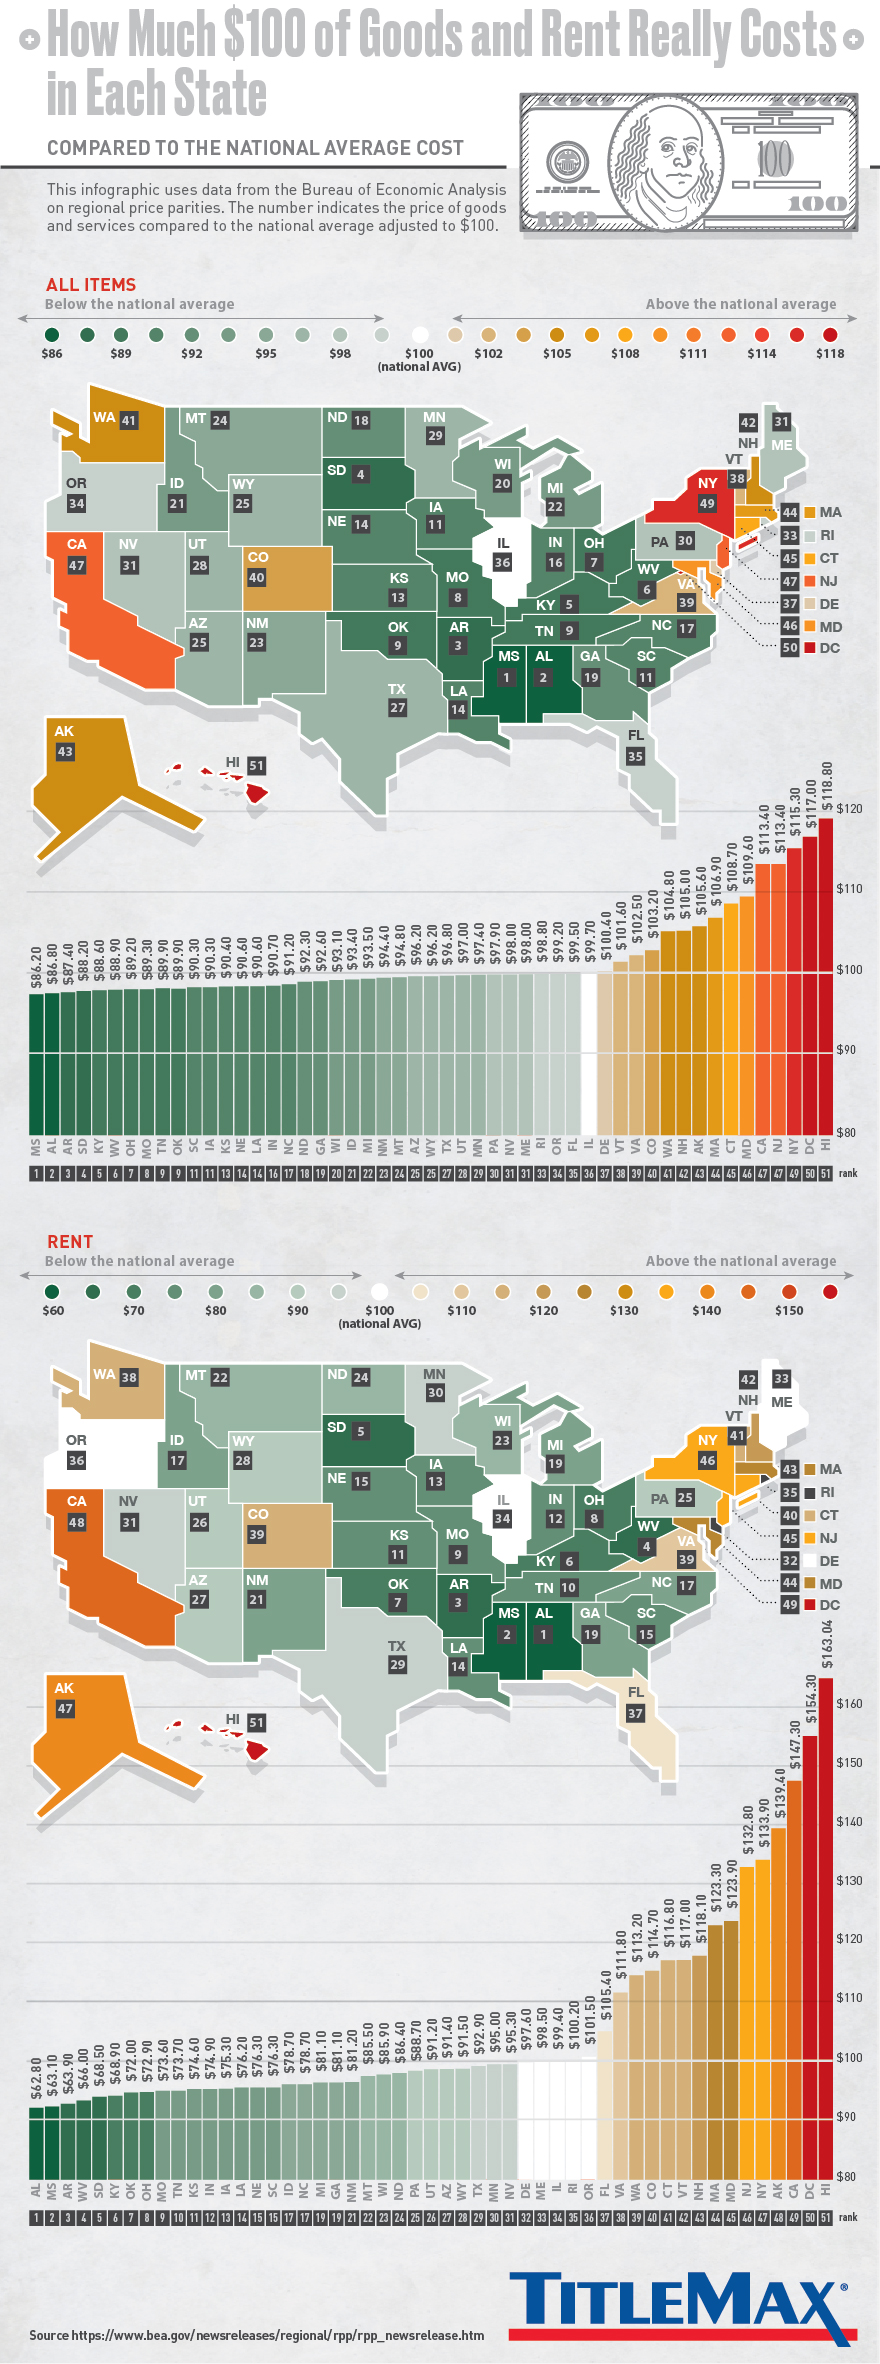 How much $100 of goods and rent really costs in each US state.